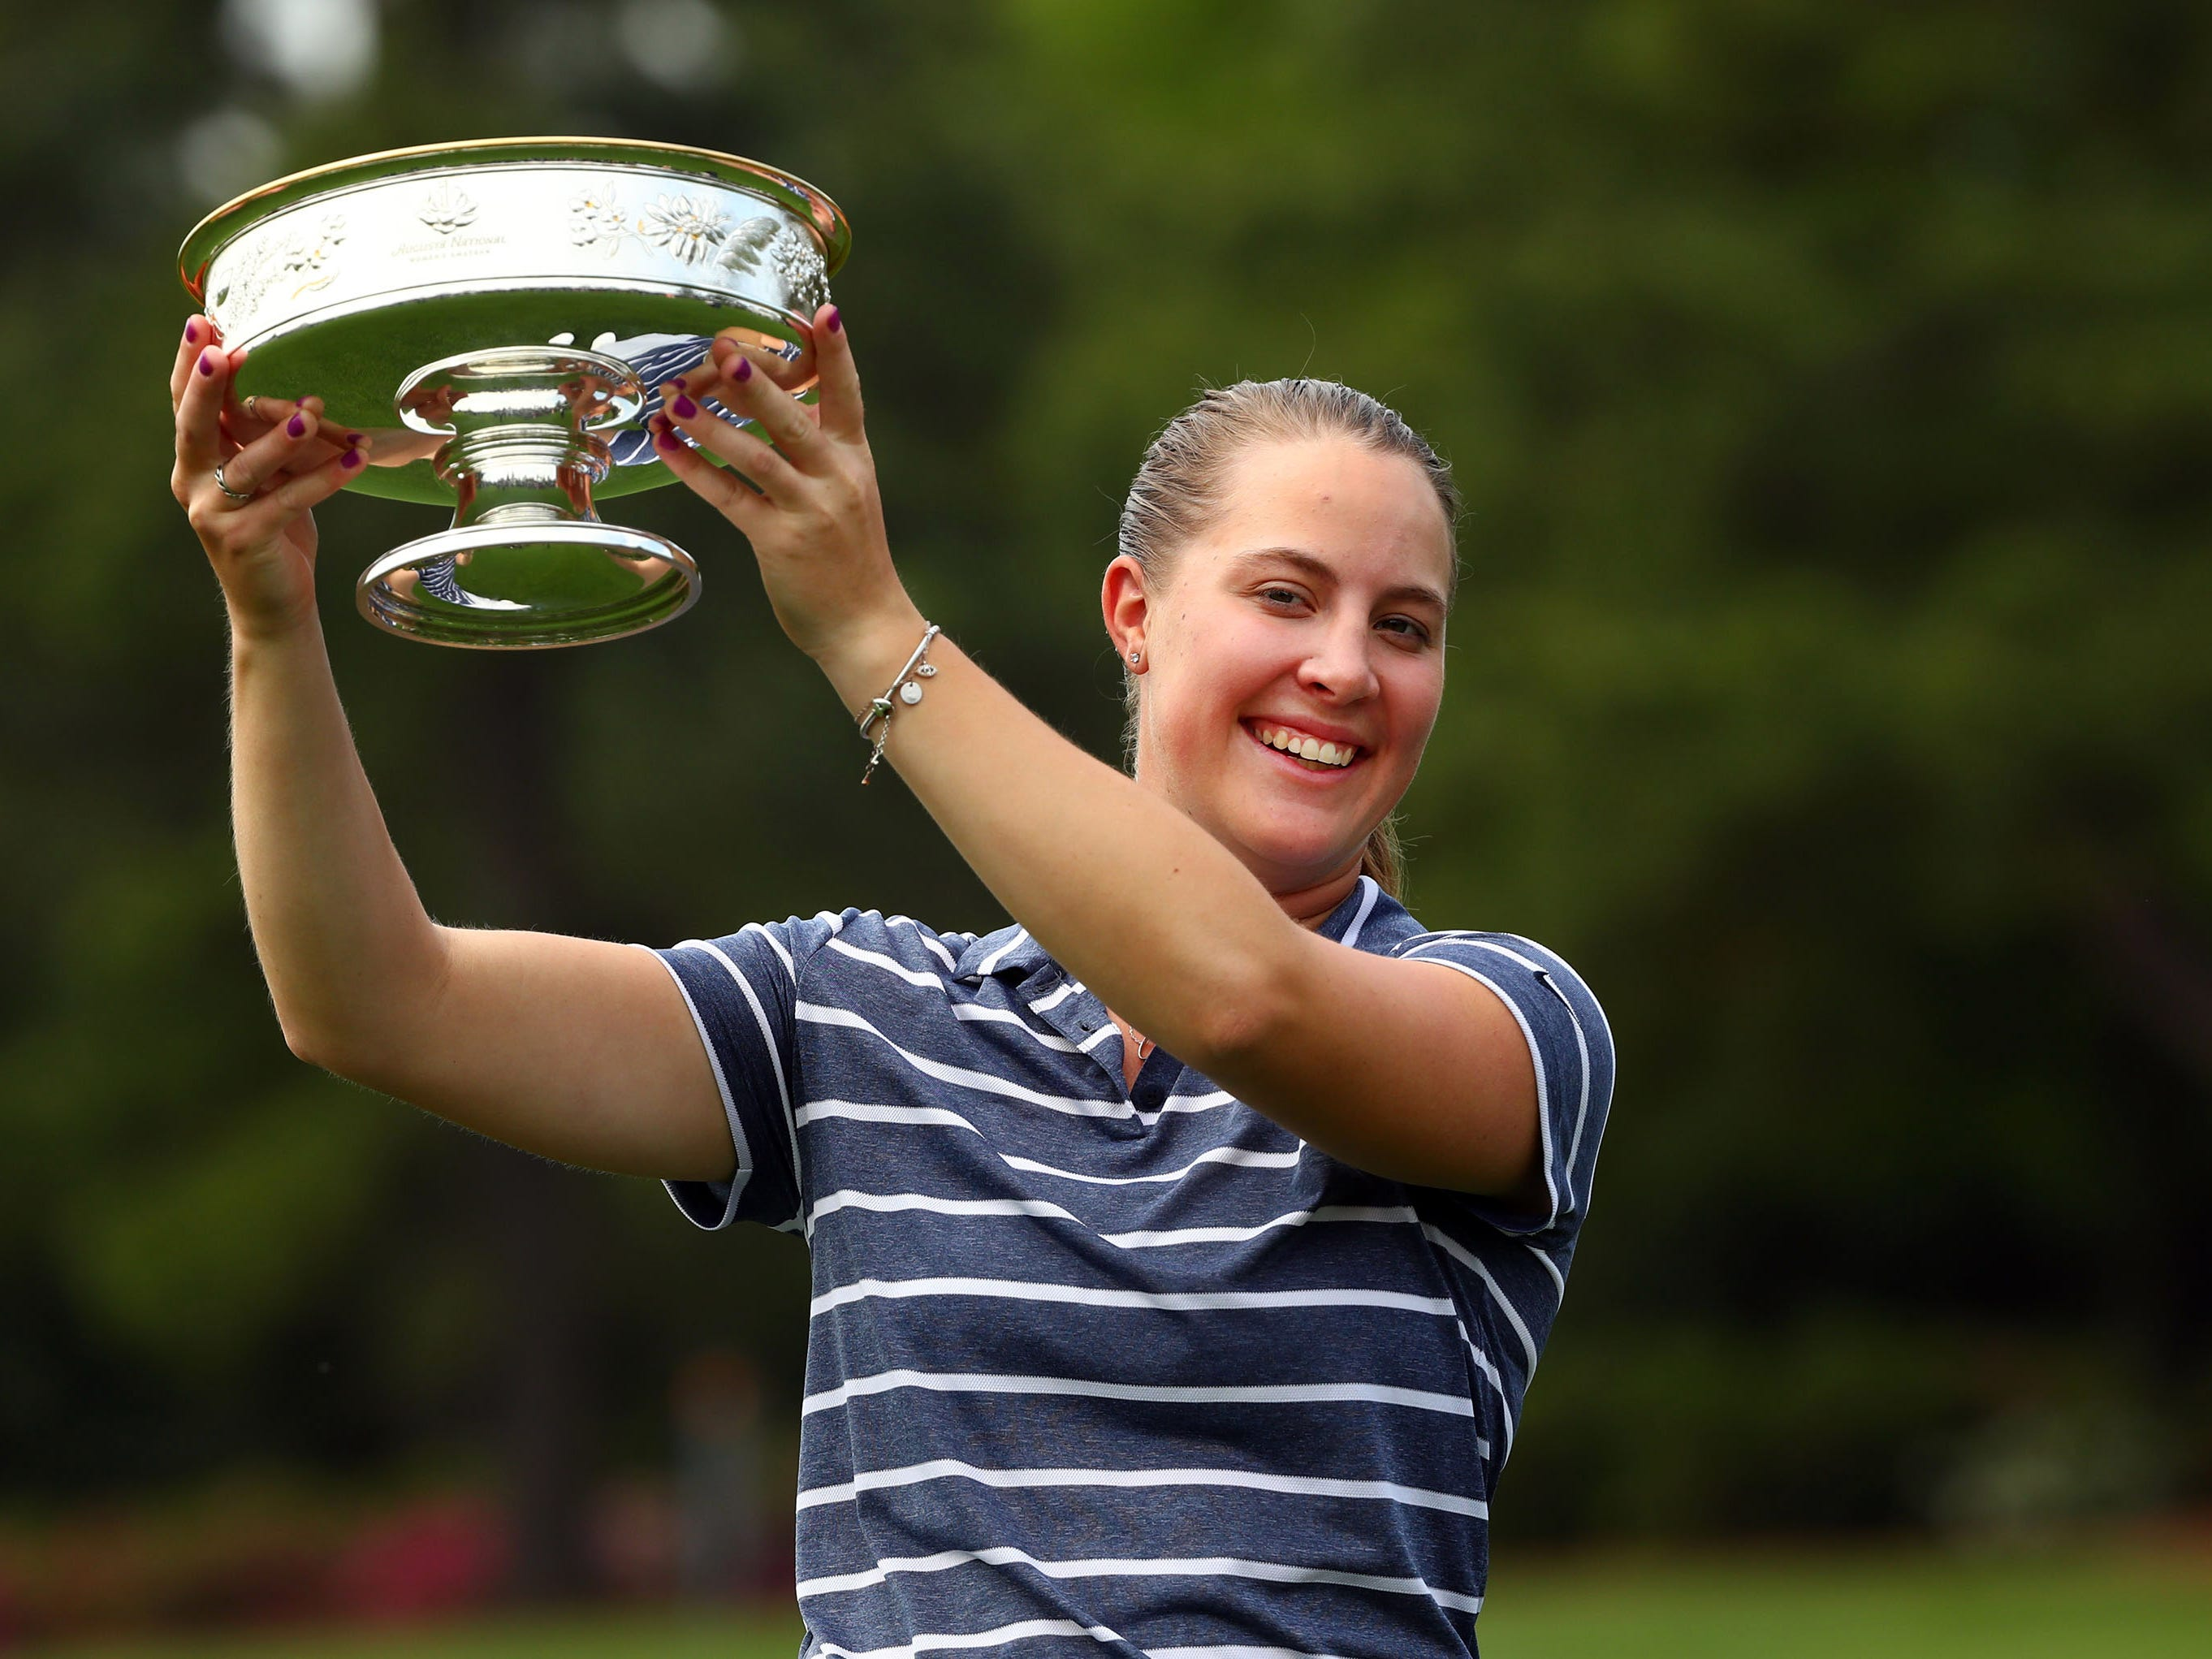 Apr 6, 2019; Augusta, GA, USA; Jennifer Kupcho of Westminster, Colo. holds-up the trophy after winning the Augusta National Women's Amateur golf tournament at Augusta National GC. Mandatory Credit: Rob Schumacher-USA TODAY Sports